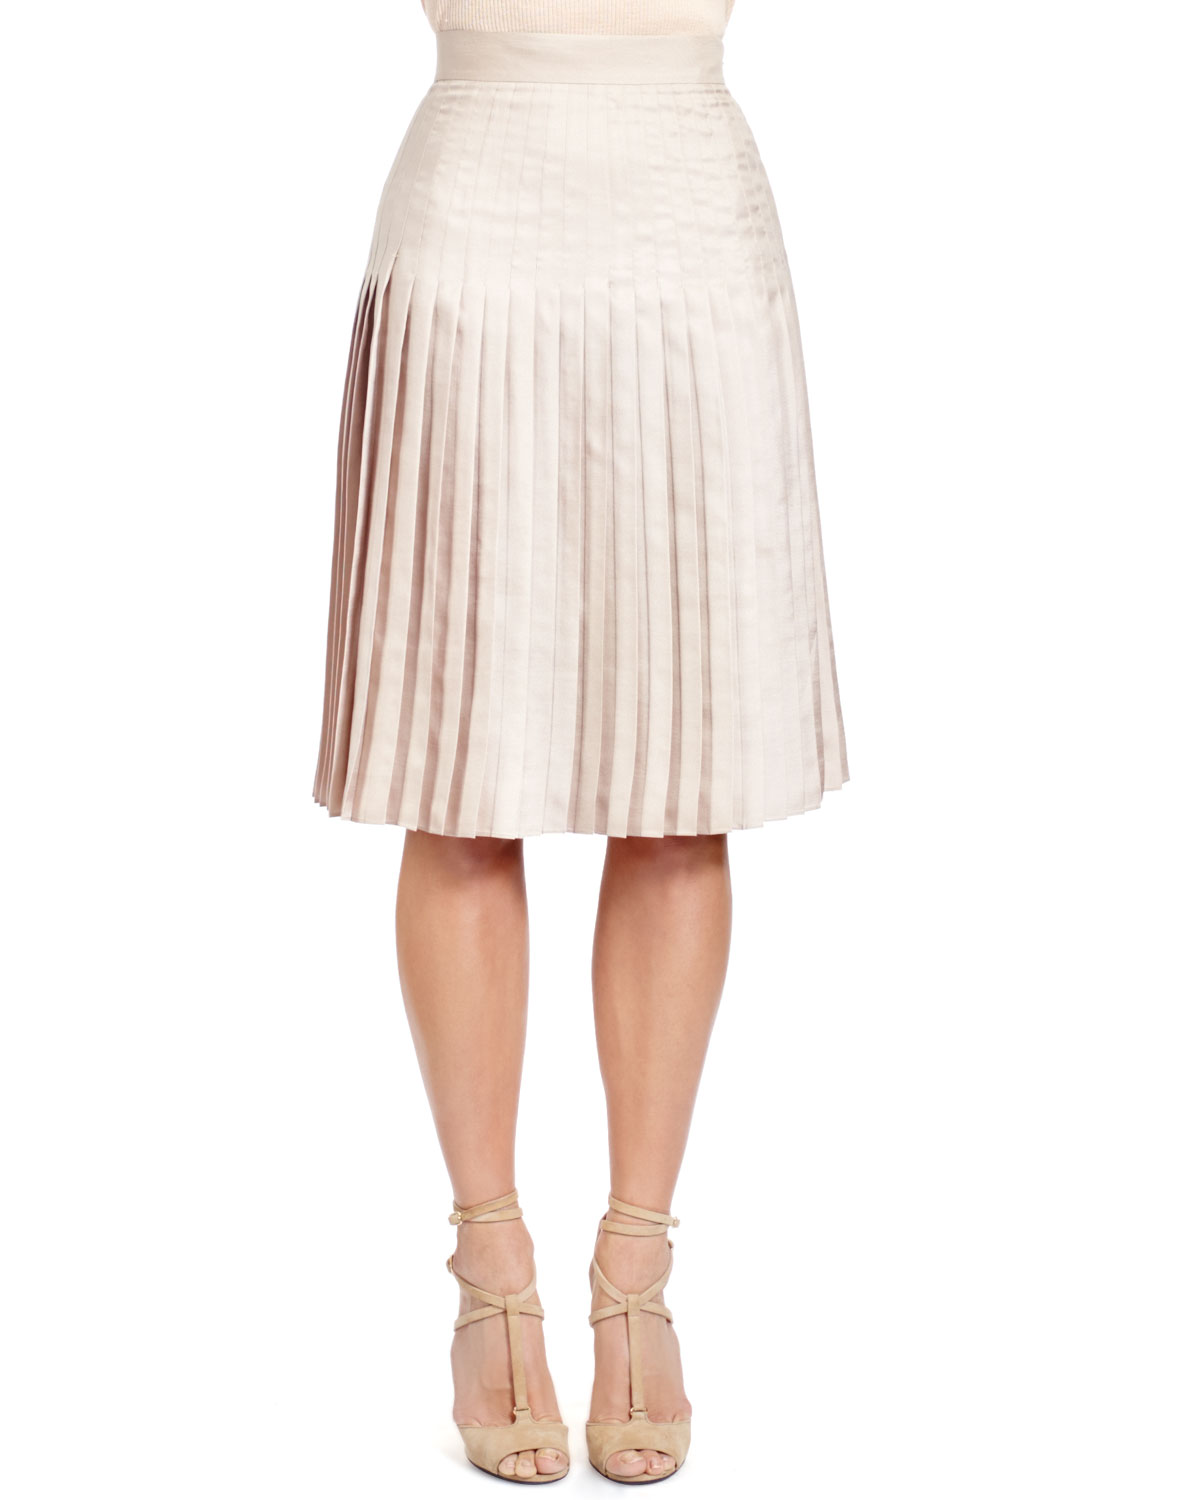 d8e651f0ea Givenchy Stitch-Down-Pleated Skirt, Taupe-Beige | Neiman Marcus